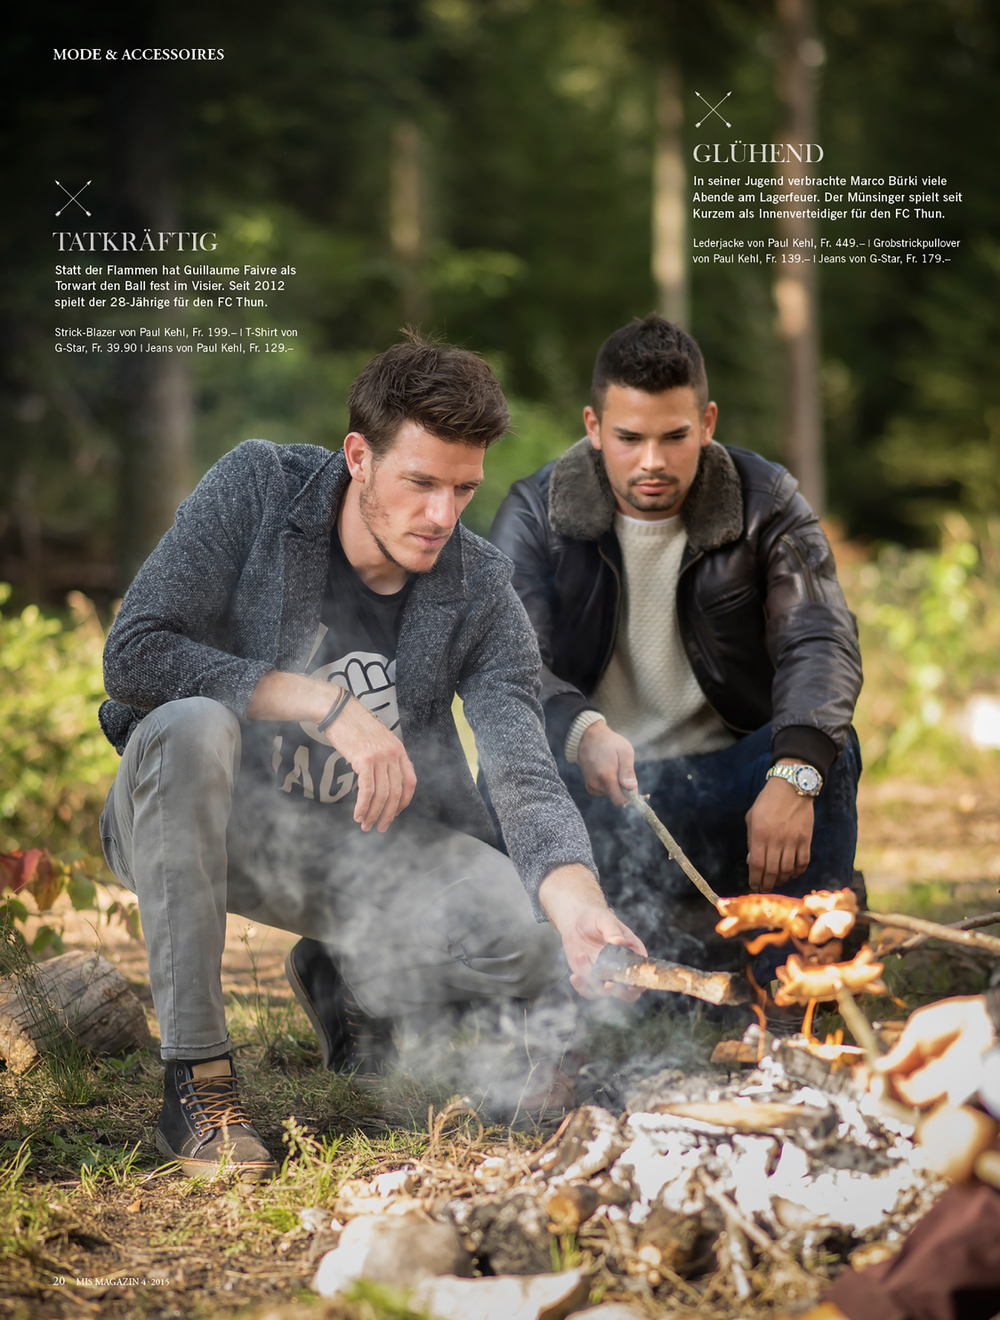 guillaume faivre & marco bürki for mis magazin